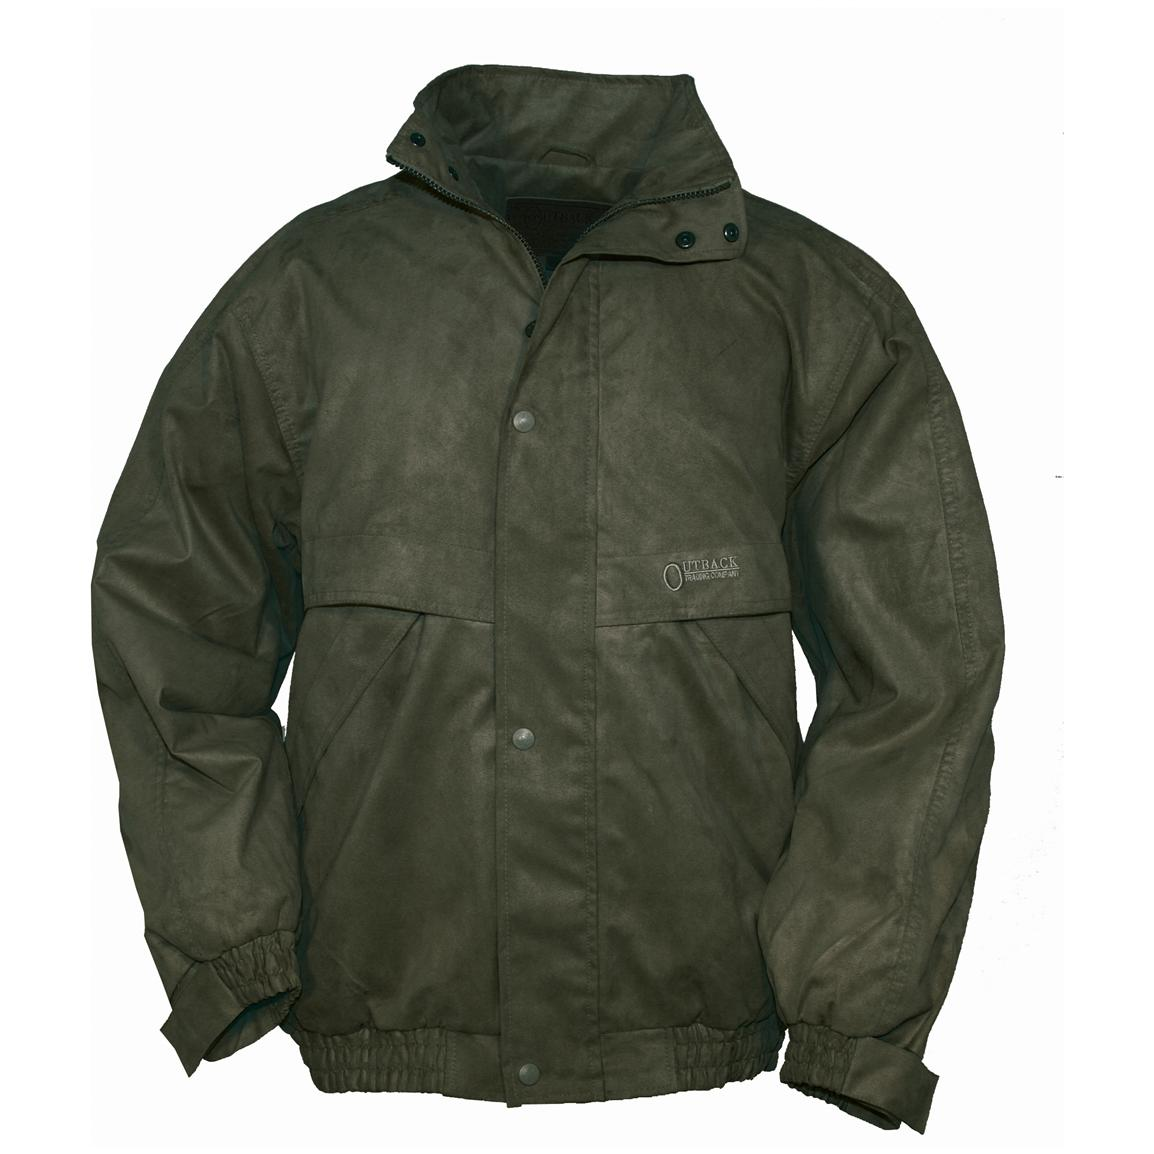 Men's Outback Trading Company® Rambler Jacket, New Zealand Green